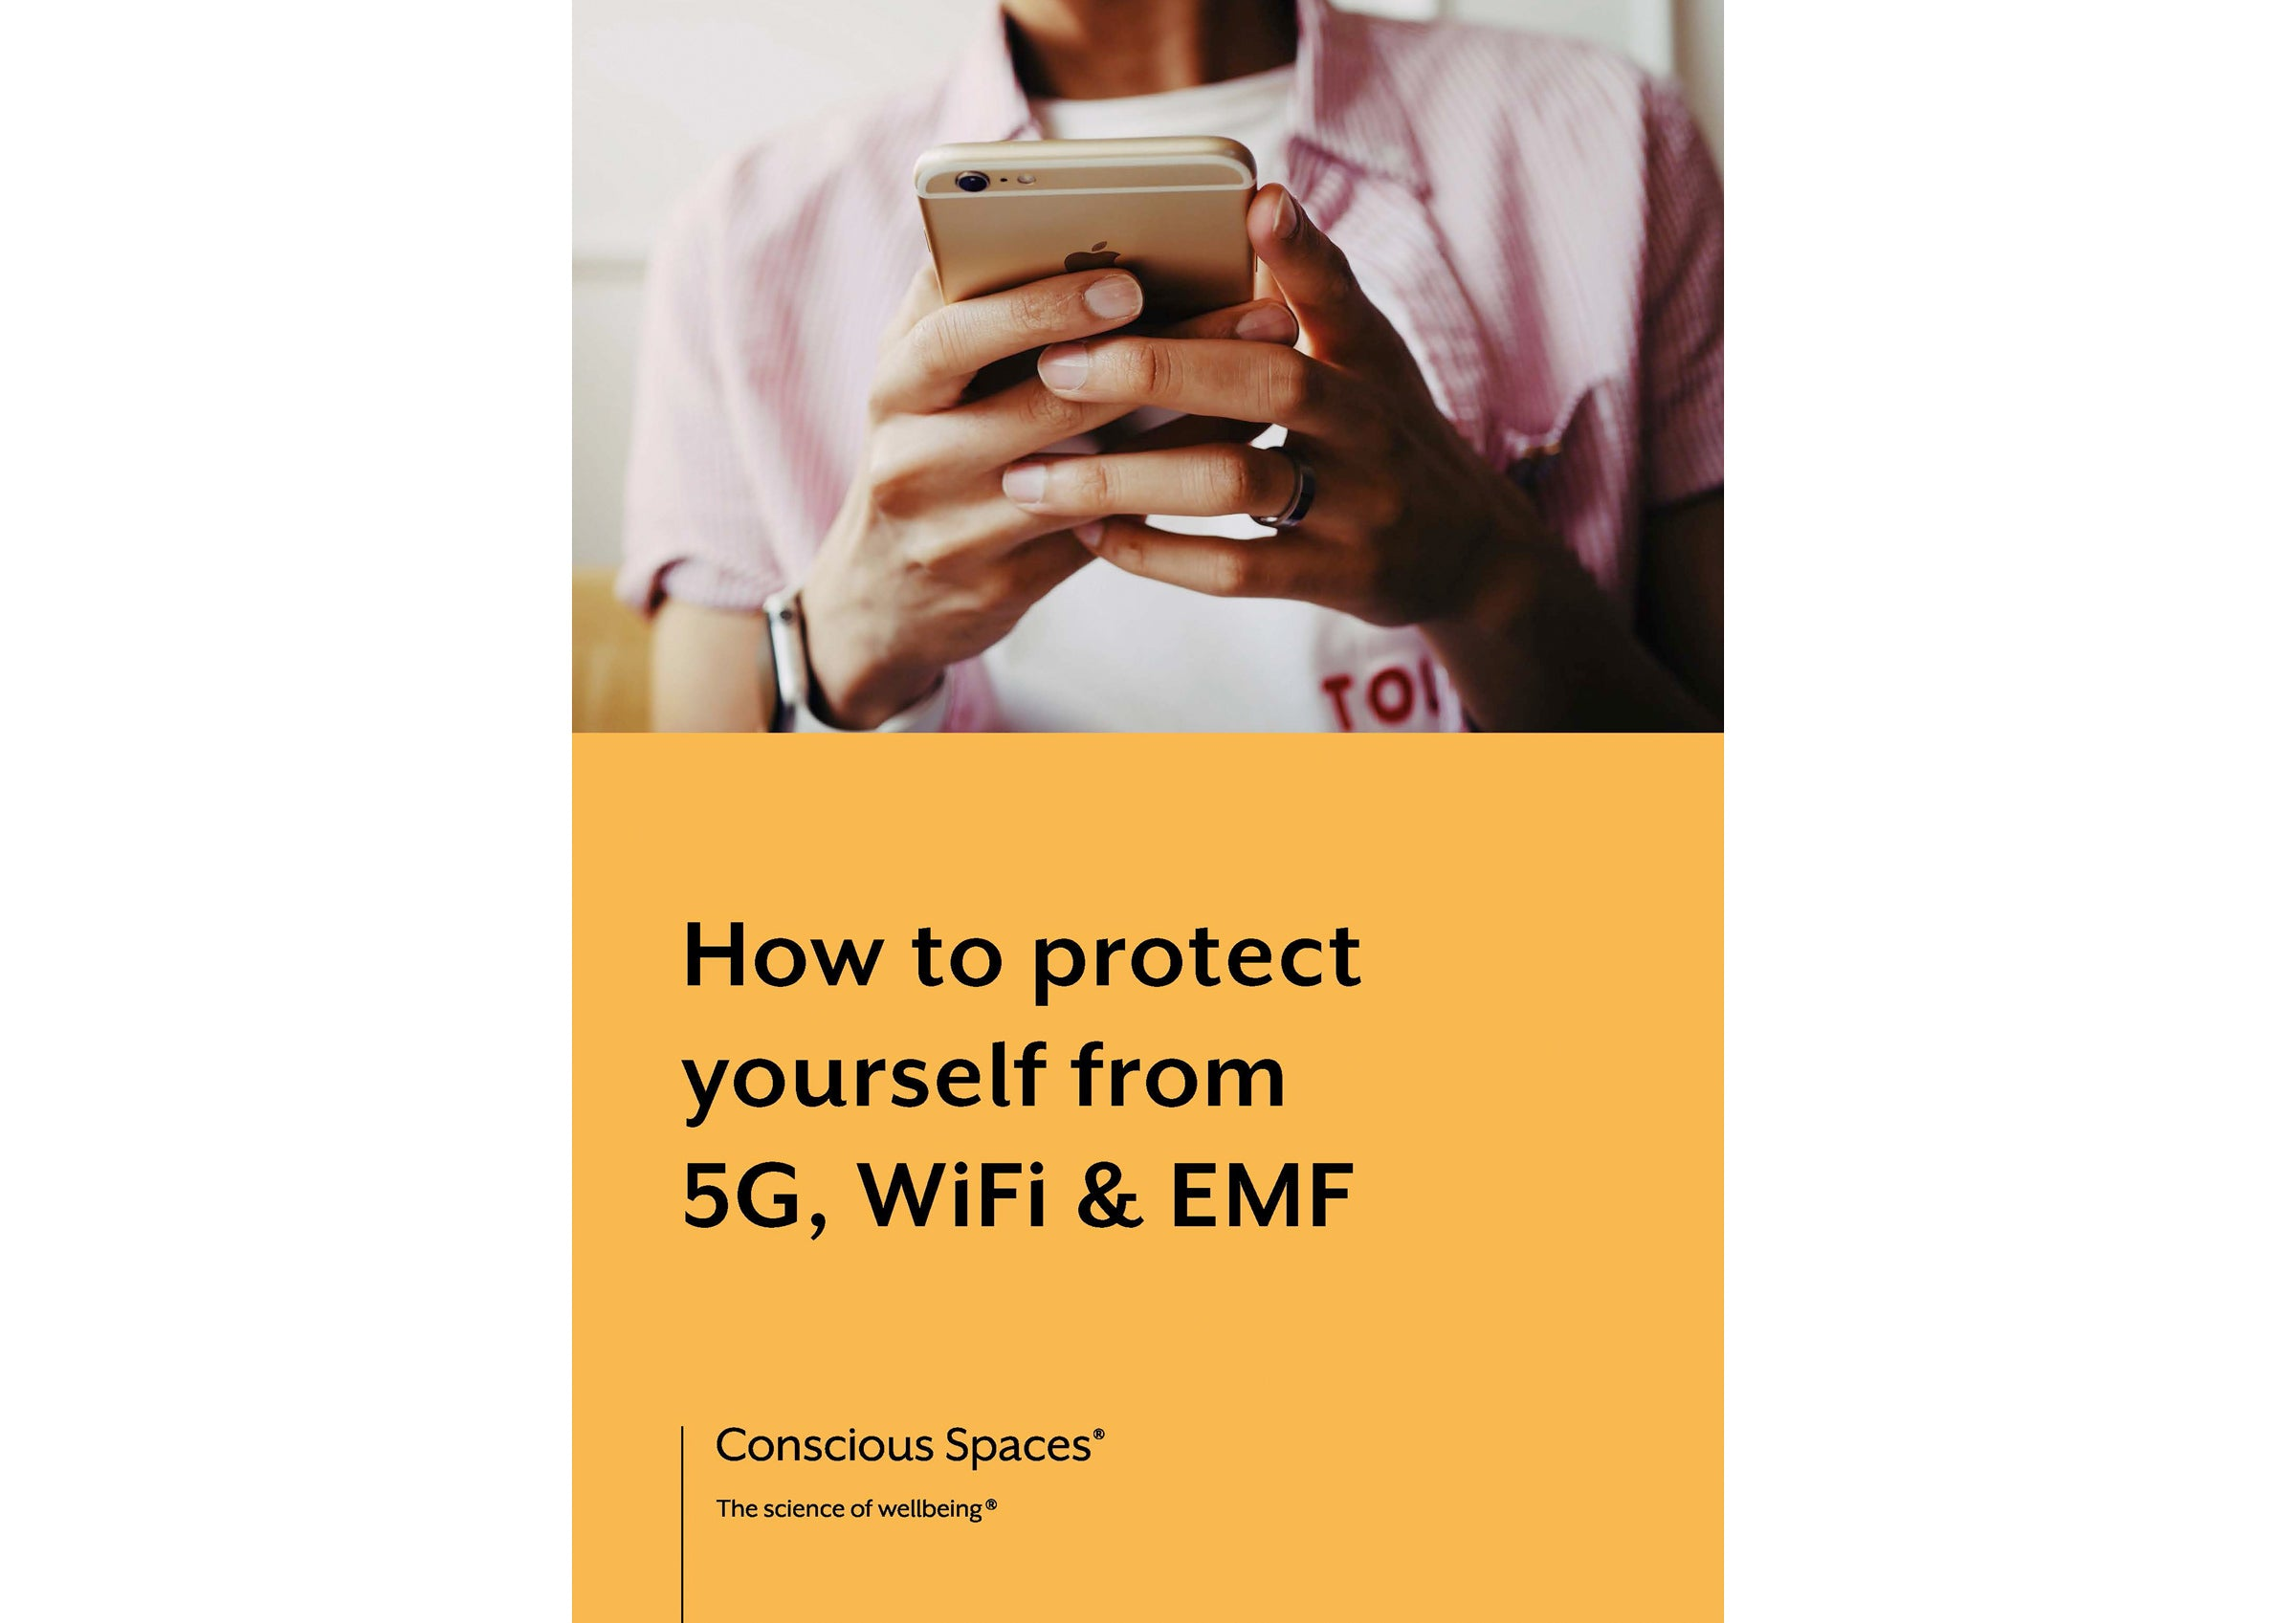 How to protect yourself from 5G/WIFI/EMFs